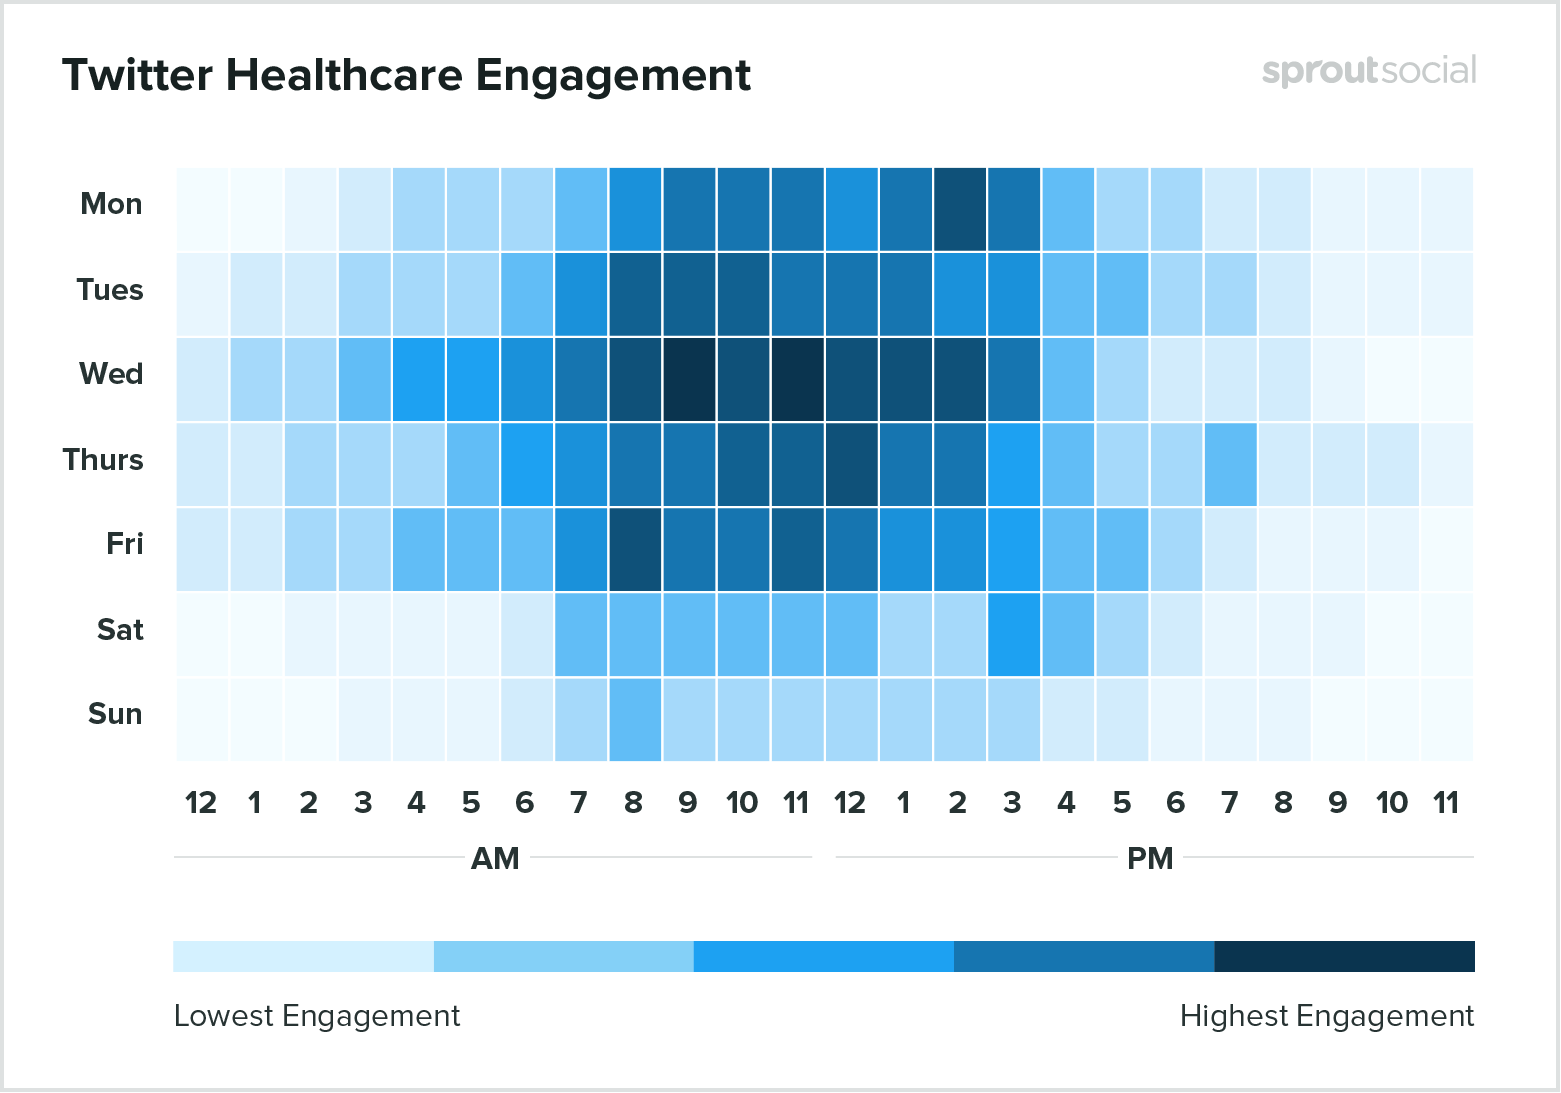 Best times to post on Twitter for healthcare 2020